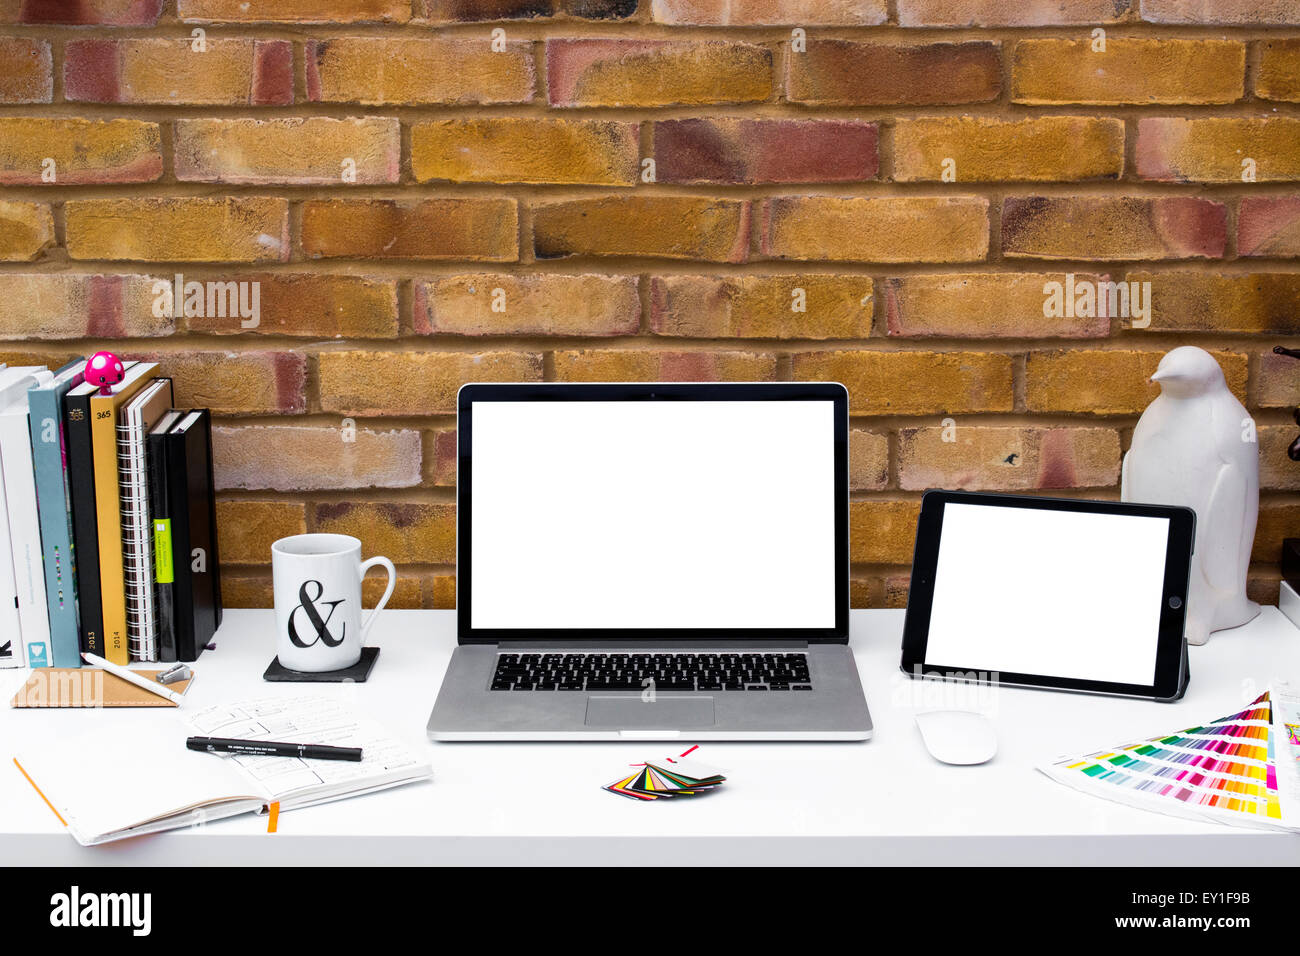 Creative Home Office creative home office space with graphic designers desk with laptop